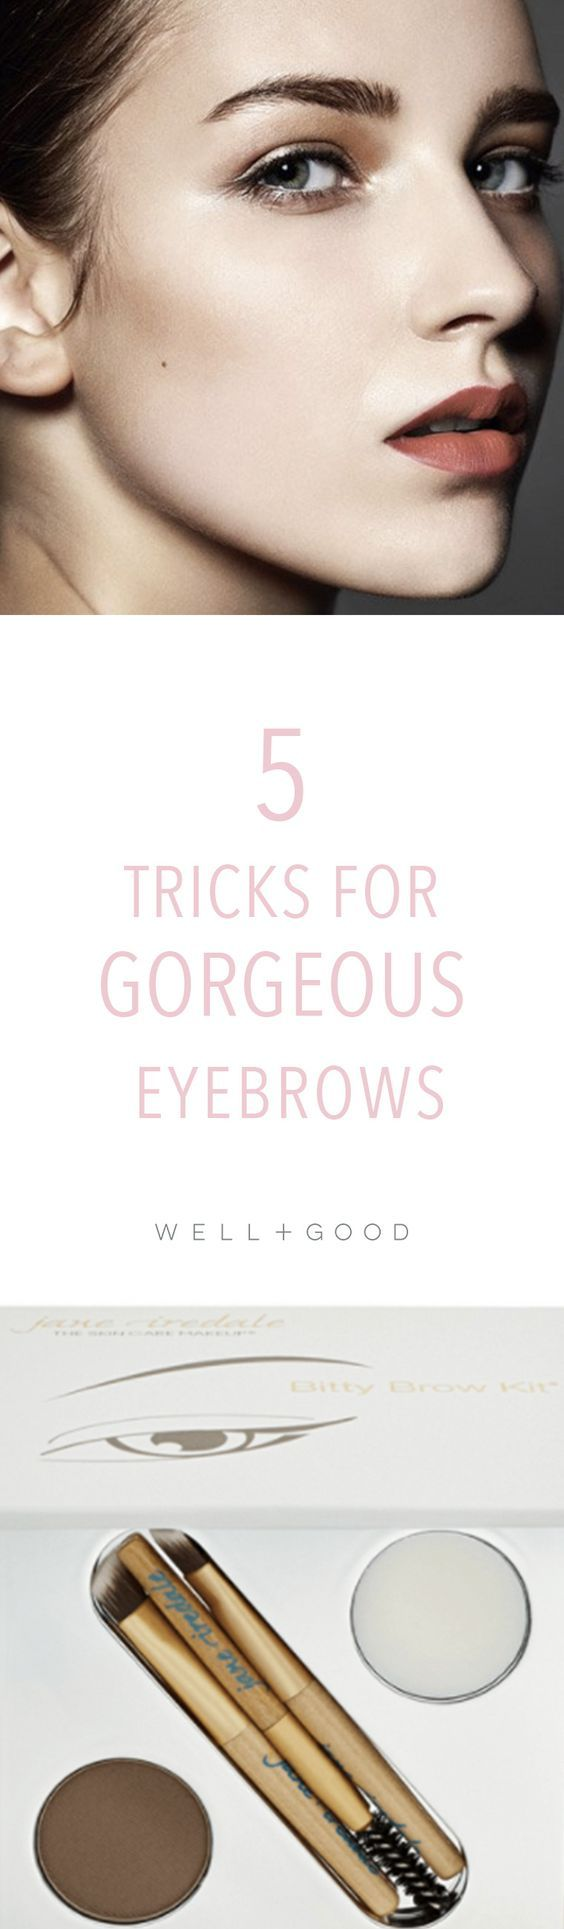 How to get gorgeous eyebrows